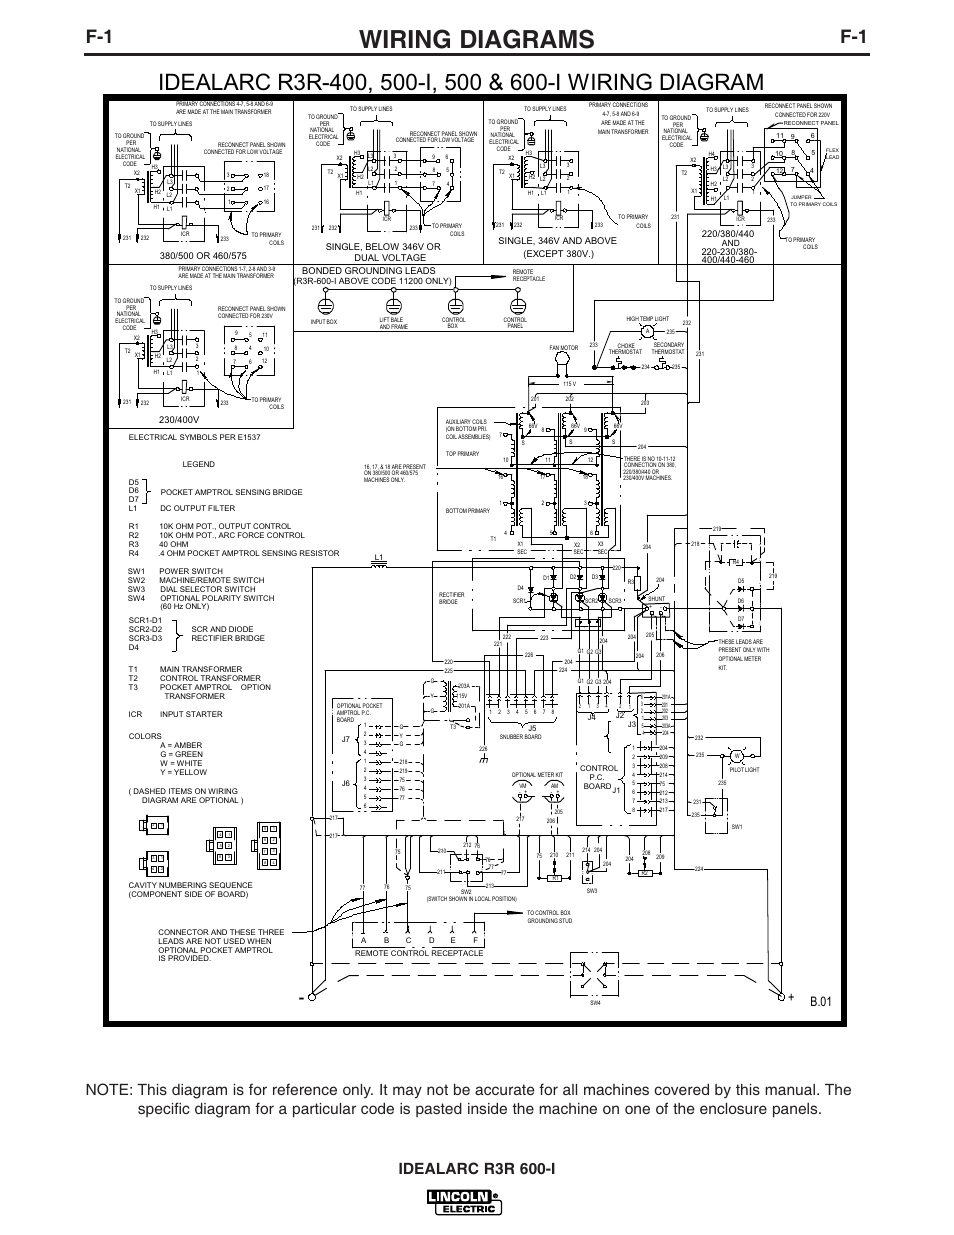 Lincoln Dc 400 Wiring Diagram Diy Enthusiasts Diagrams L9376 B 01 Electric Idealarc R3r 600 I Rh Manualsdir Com 1999 Town Car 1965